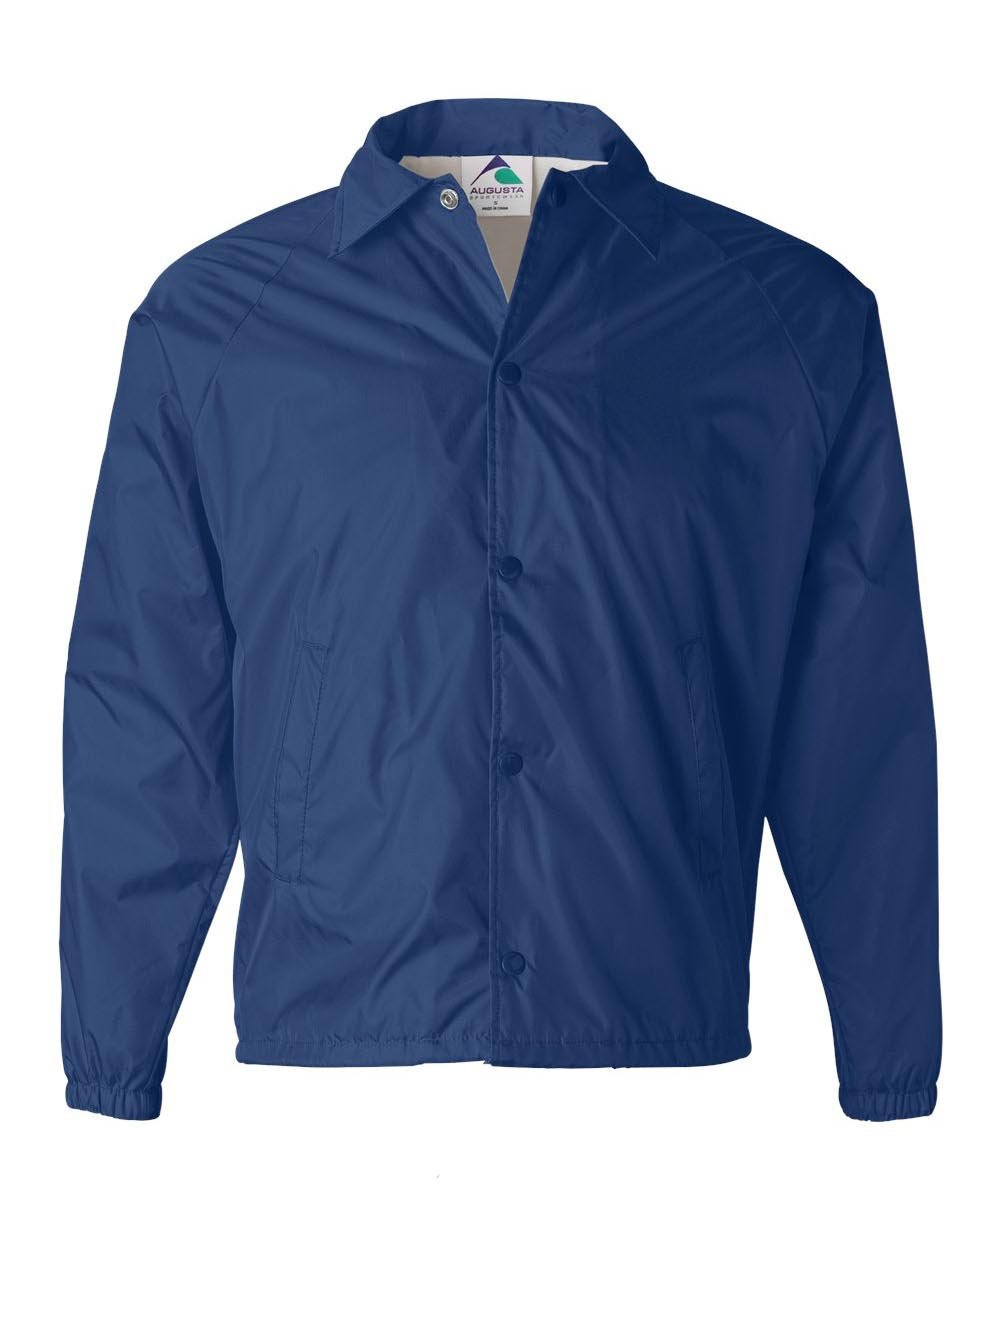 Augusta Sportswear Mens Nylon Coach's Jacket Lined Royal XXXX-Large by Augusta Sportswear